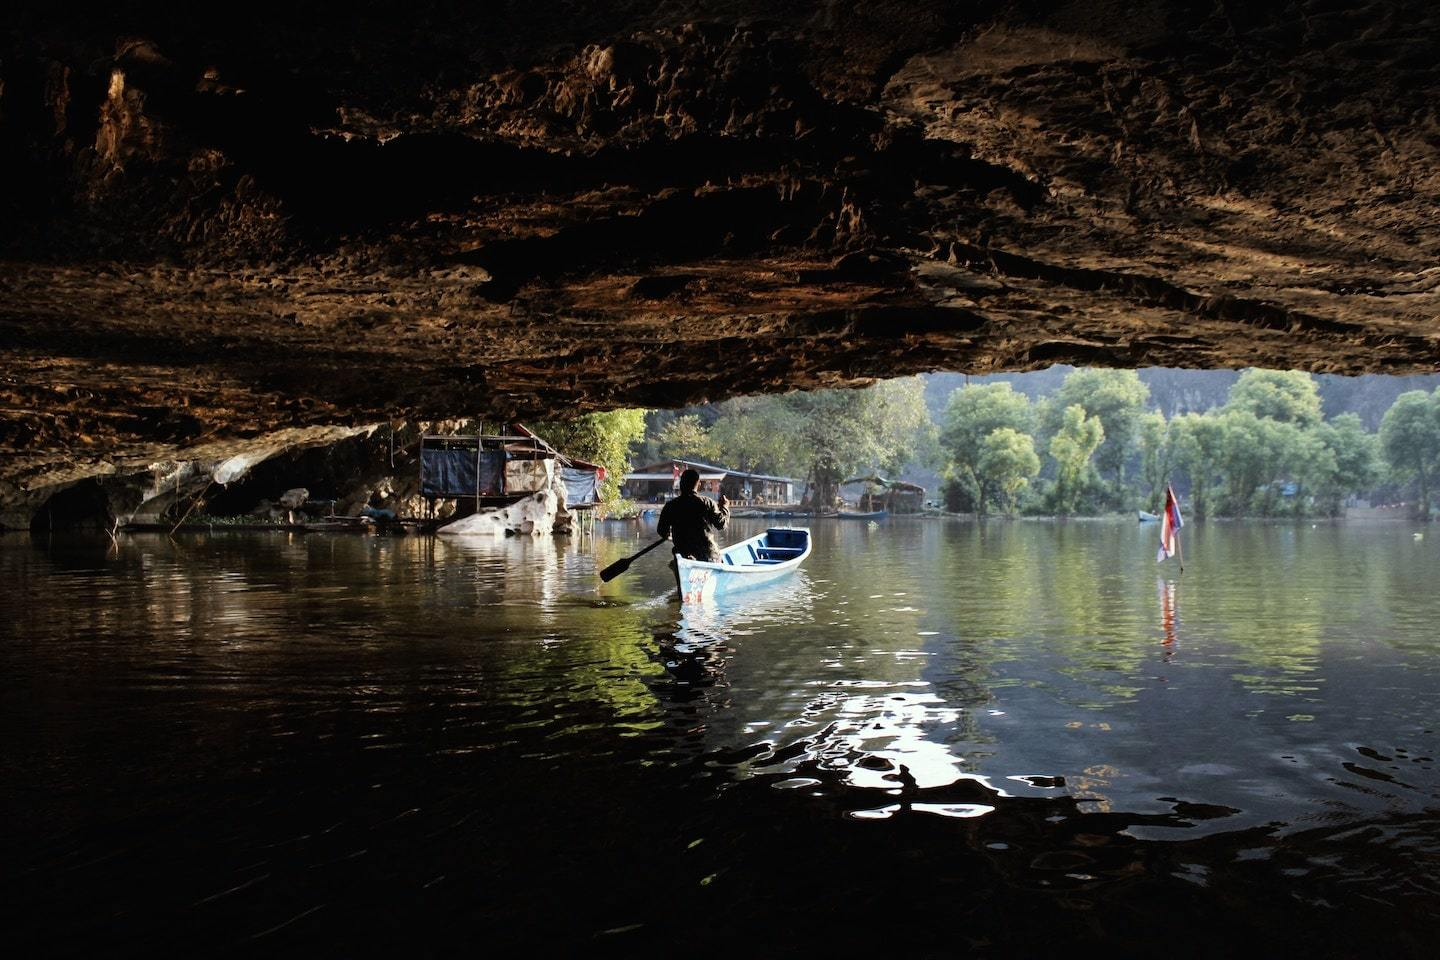 person rowing a boat through water in a cave